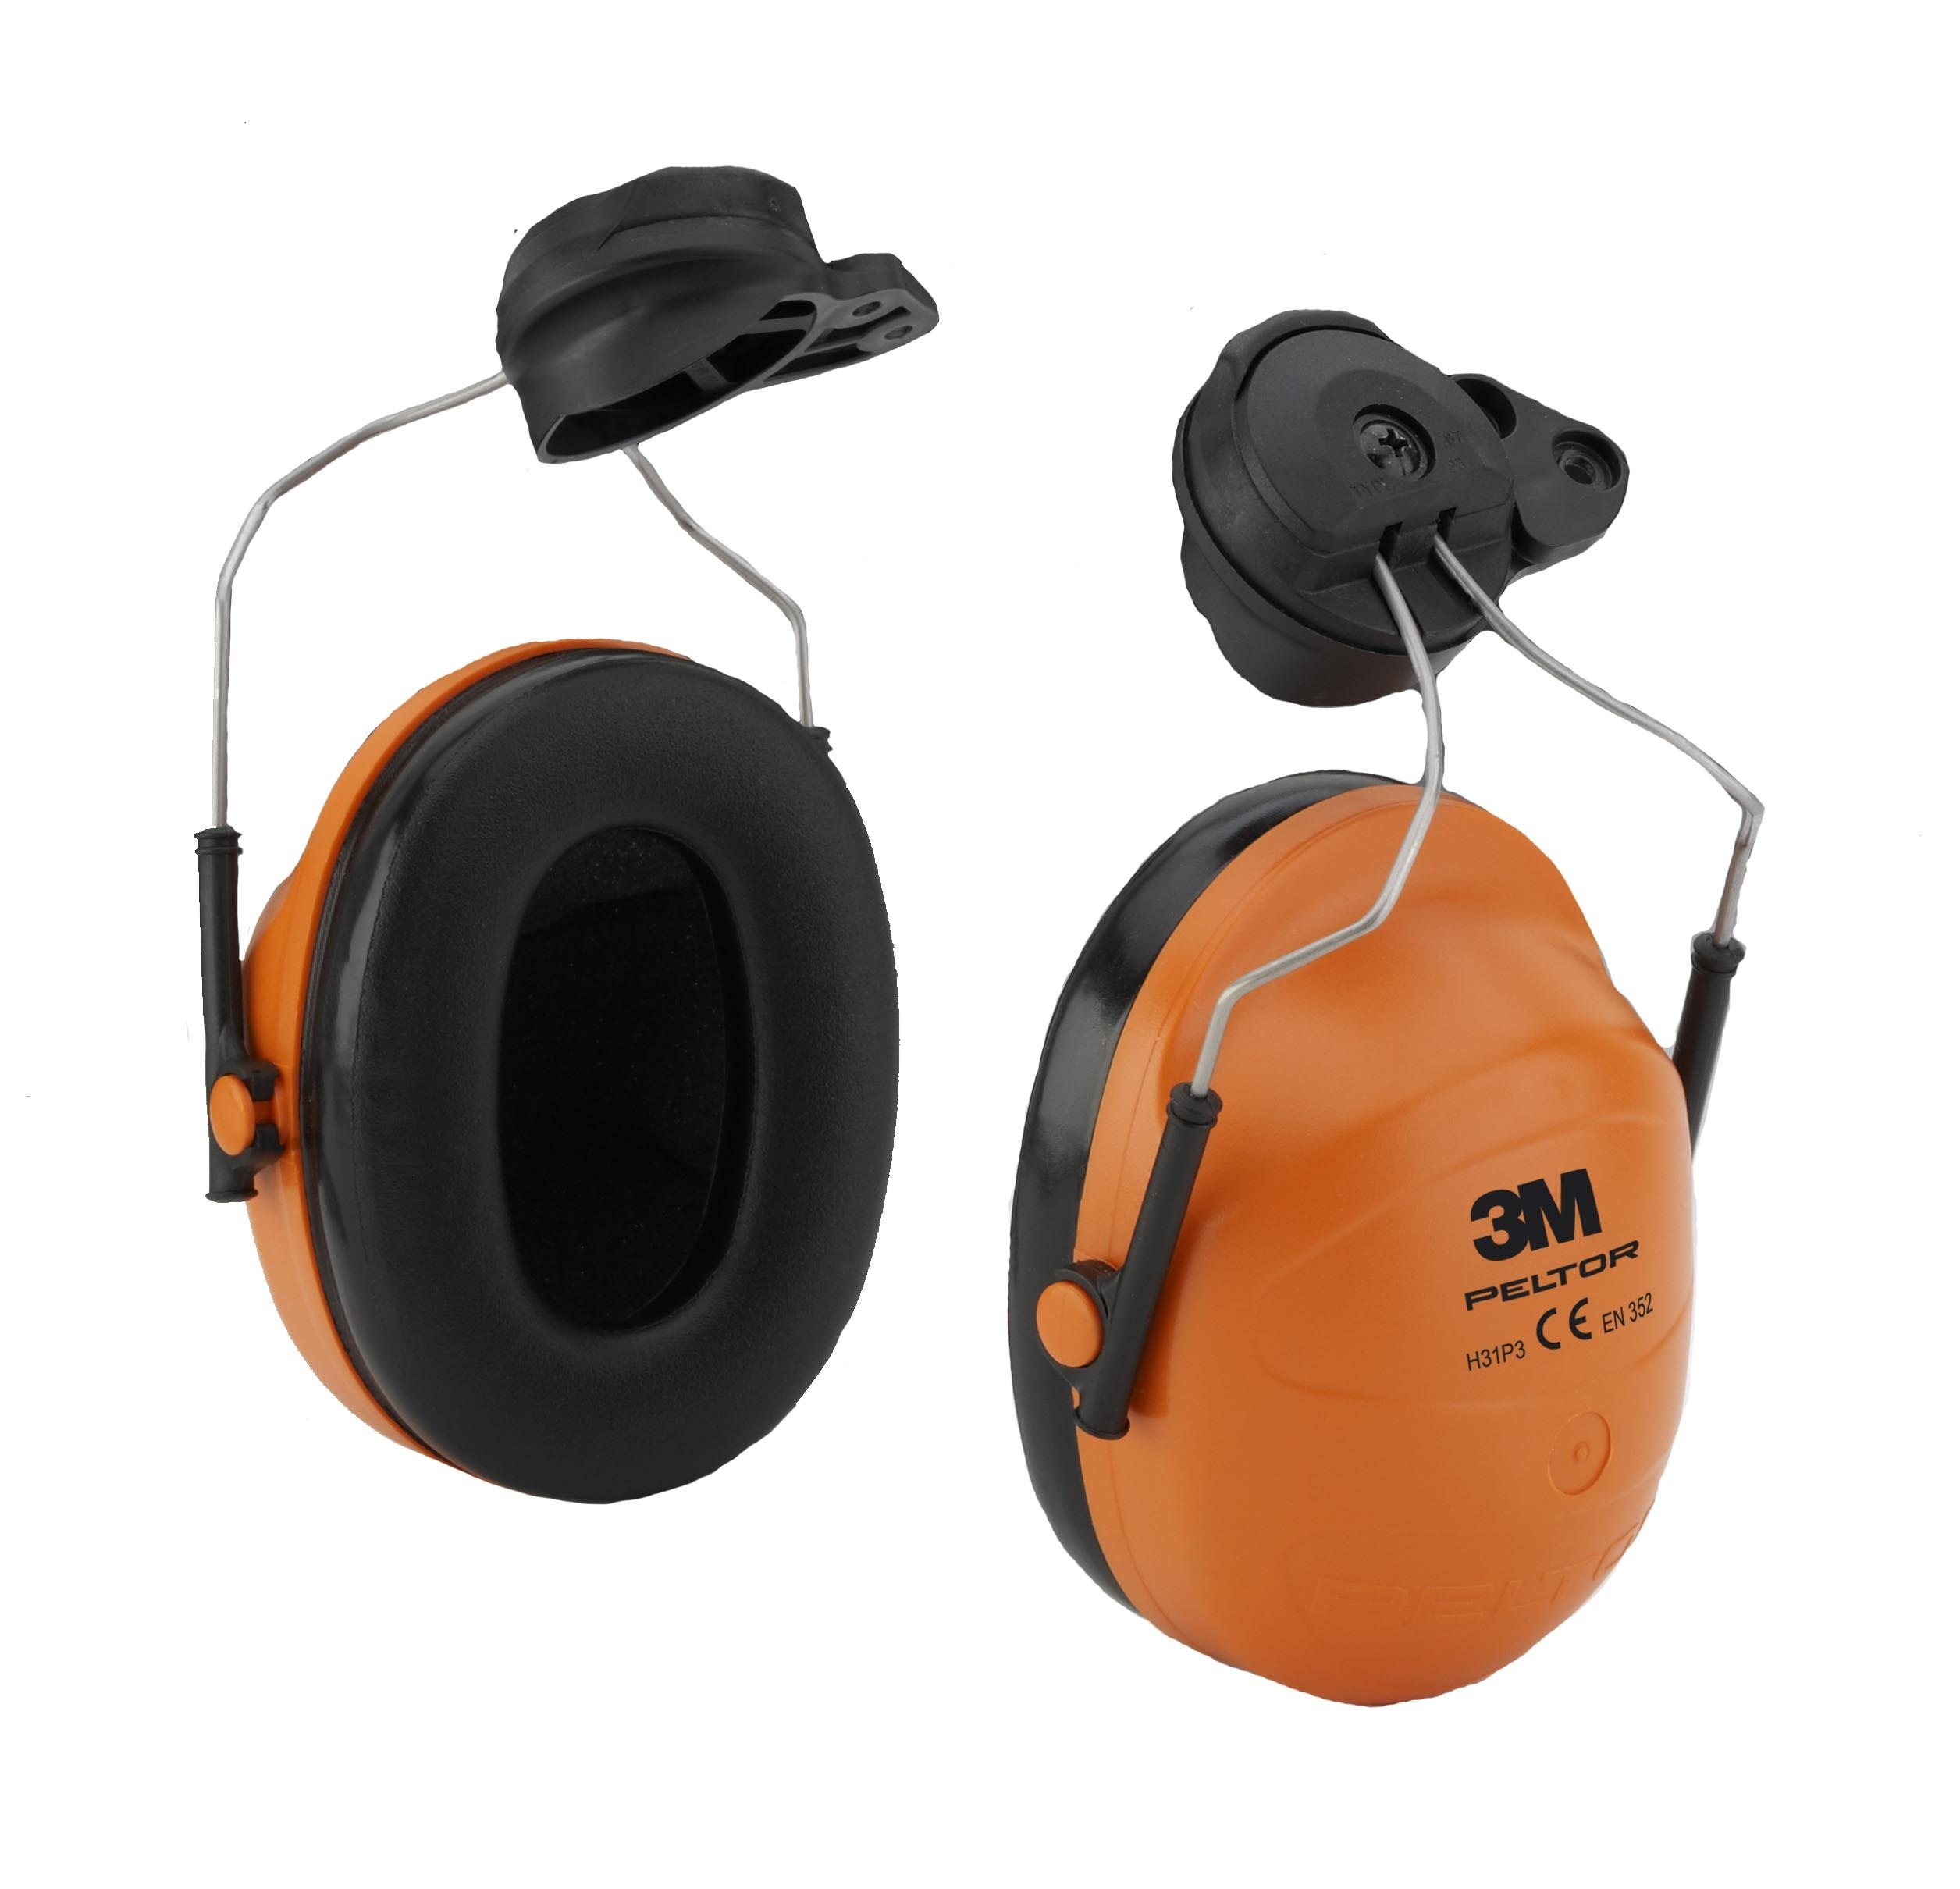 3M Peltor Earmuff Assembly M-985/37333(AAD), for Versaflo M-100 and M-300 Products